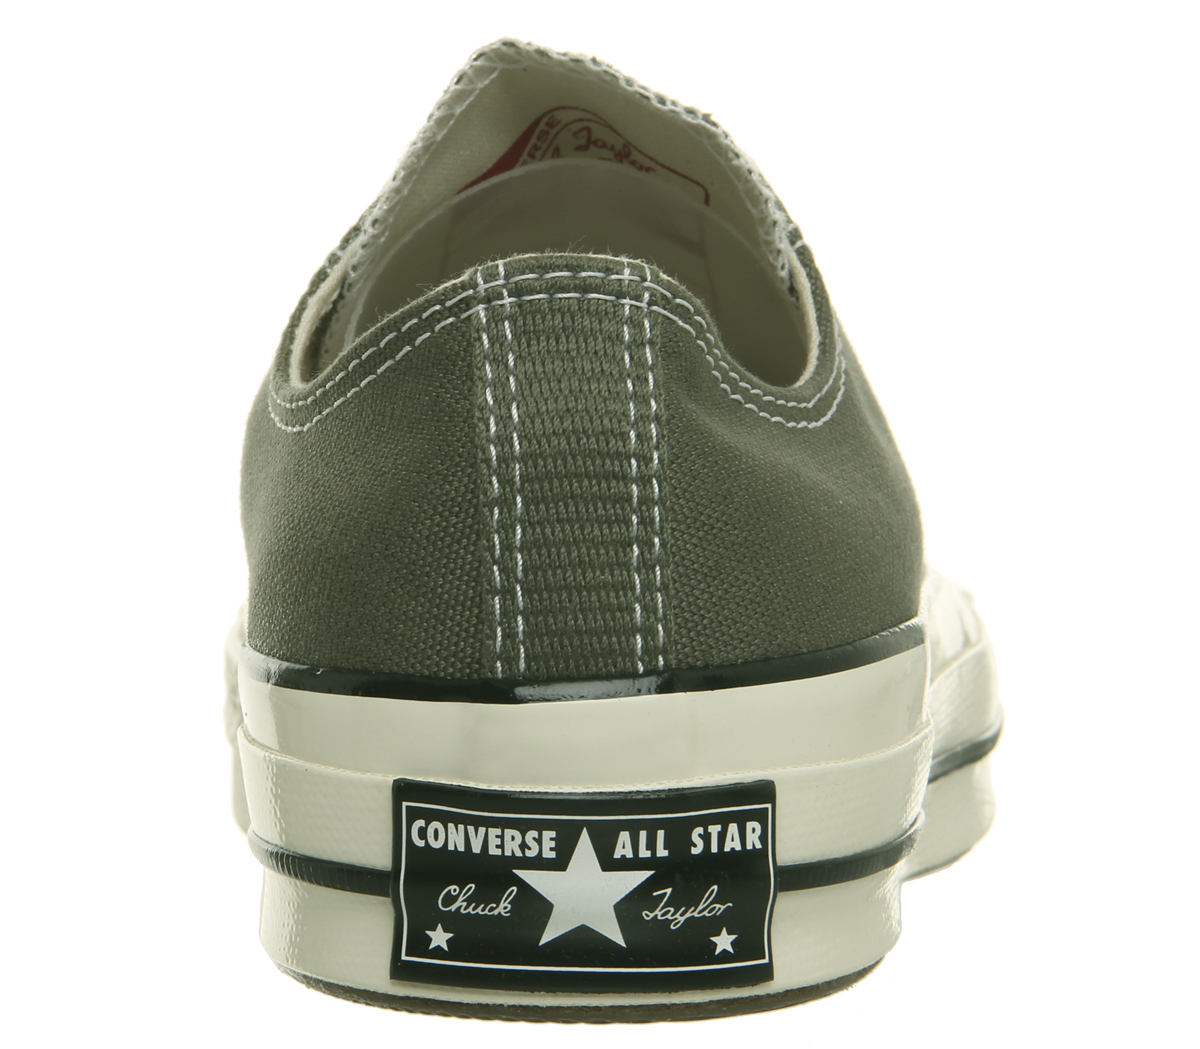 Converse All Star Ox 70'S Baskets Champ Surplus Noir Baskets Baskets Baskets | Exquis Art